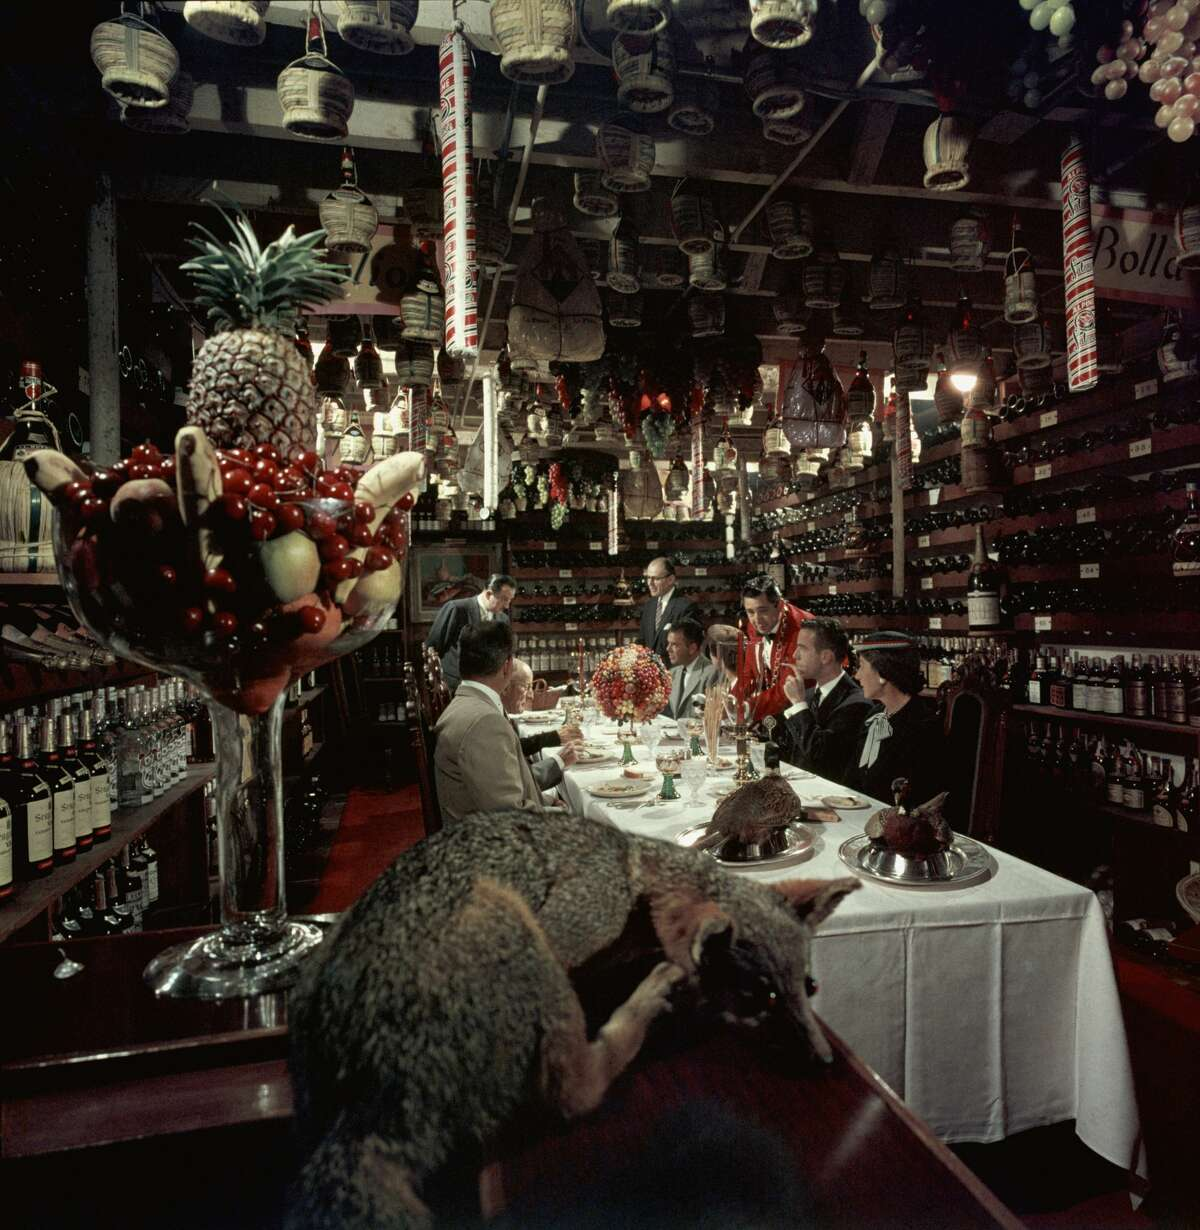 Luminaries of the time dined in SF Famous celebrities likeBing Crosby, Frank Sinatra, Marilyn Monroe and Joan Crawford were all regulars at the swanky Blue Fox restaurant. In this 1956 file photo patrons dine in the wine cellar at the Blue Fox restaurant. It closed in 1993.